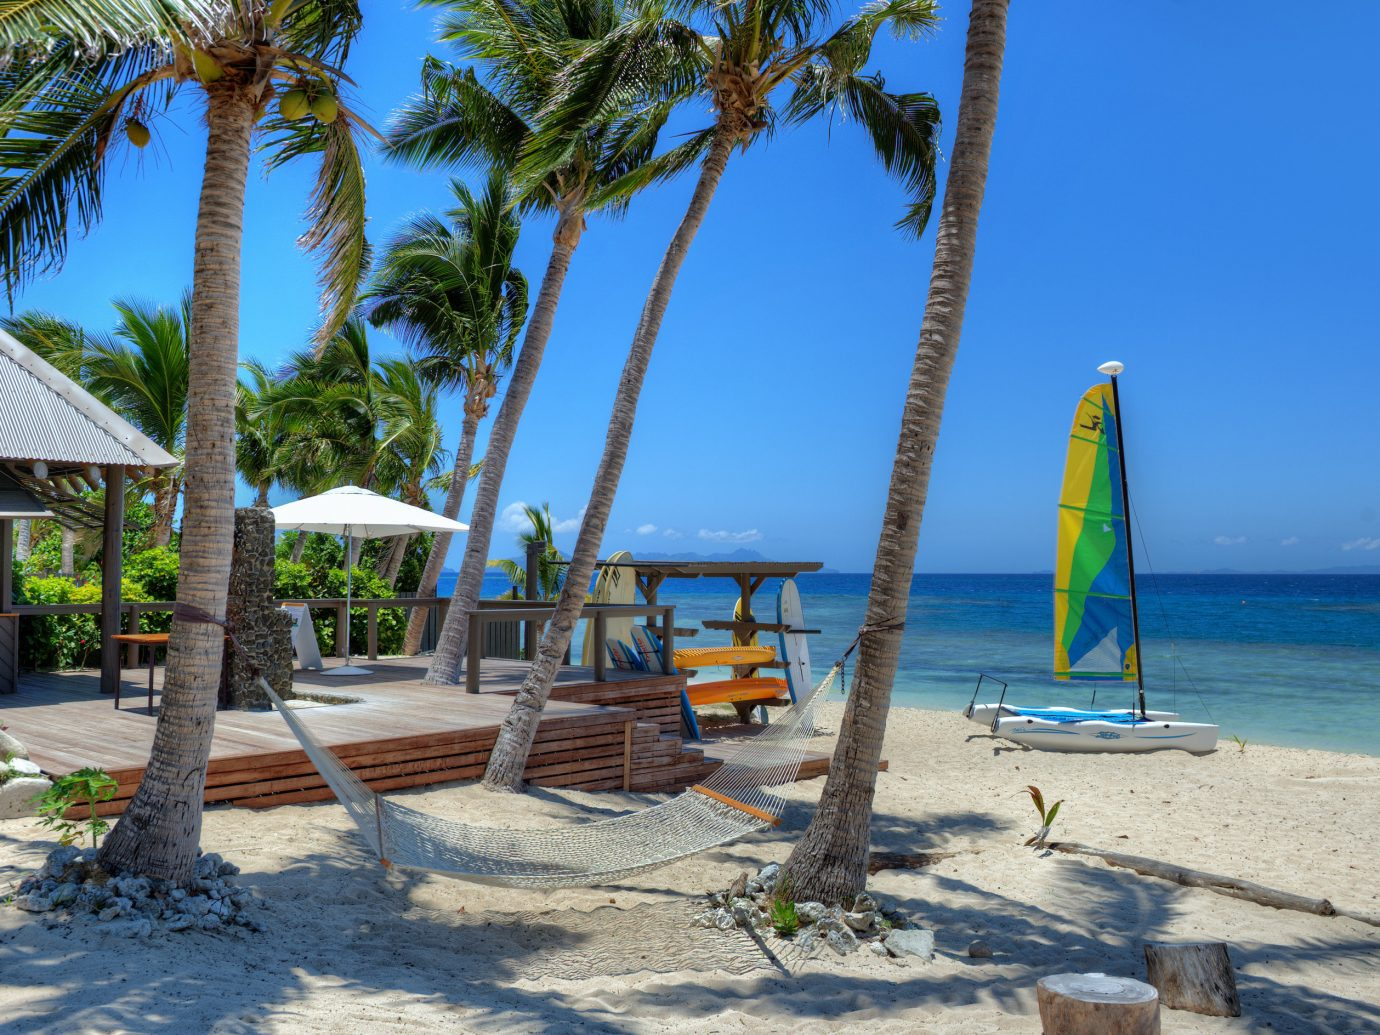 All-Inclusive Resorts Hotels Luxury Travel outdoor sky tree body of water Beach palm Resort palm tree tropics arecales Sea shore vacation coastal and oceanic landforms caribbean leisure plant tourism Ocean Coast bay real estate water Island sandy